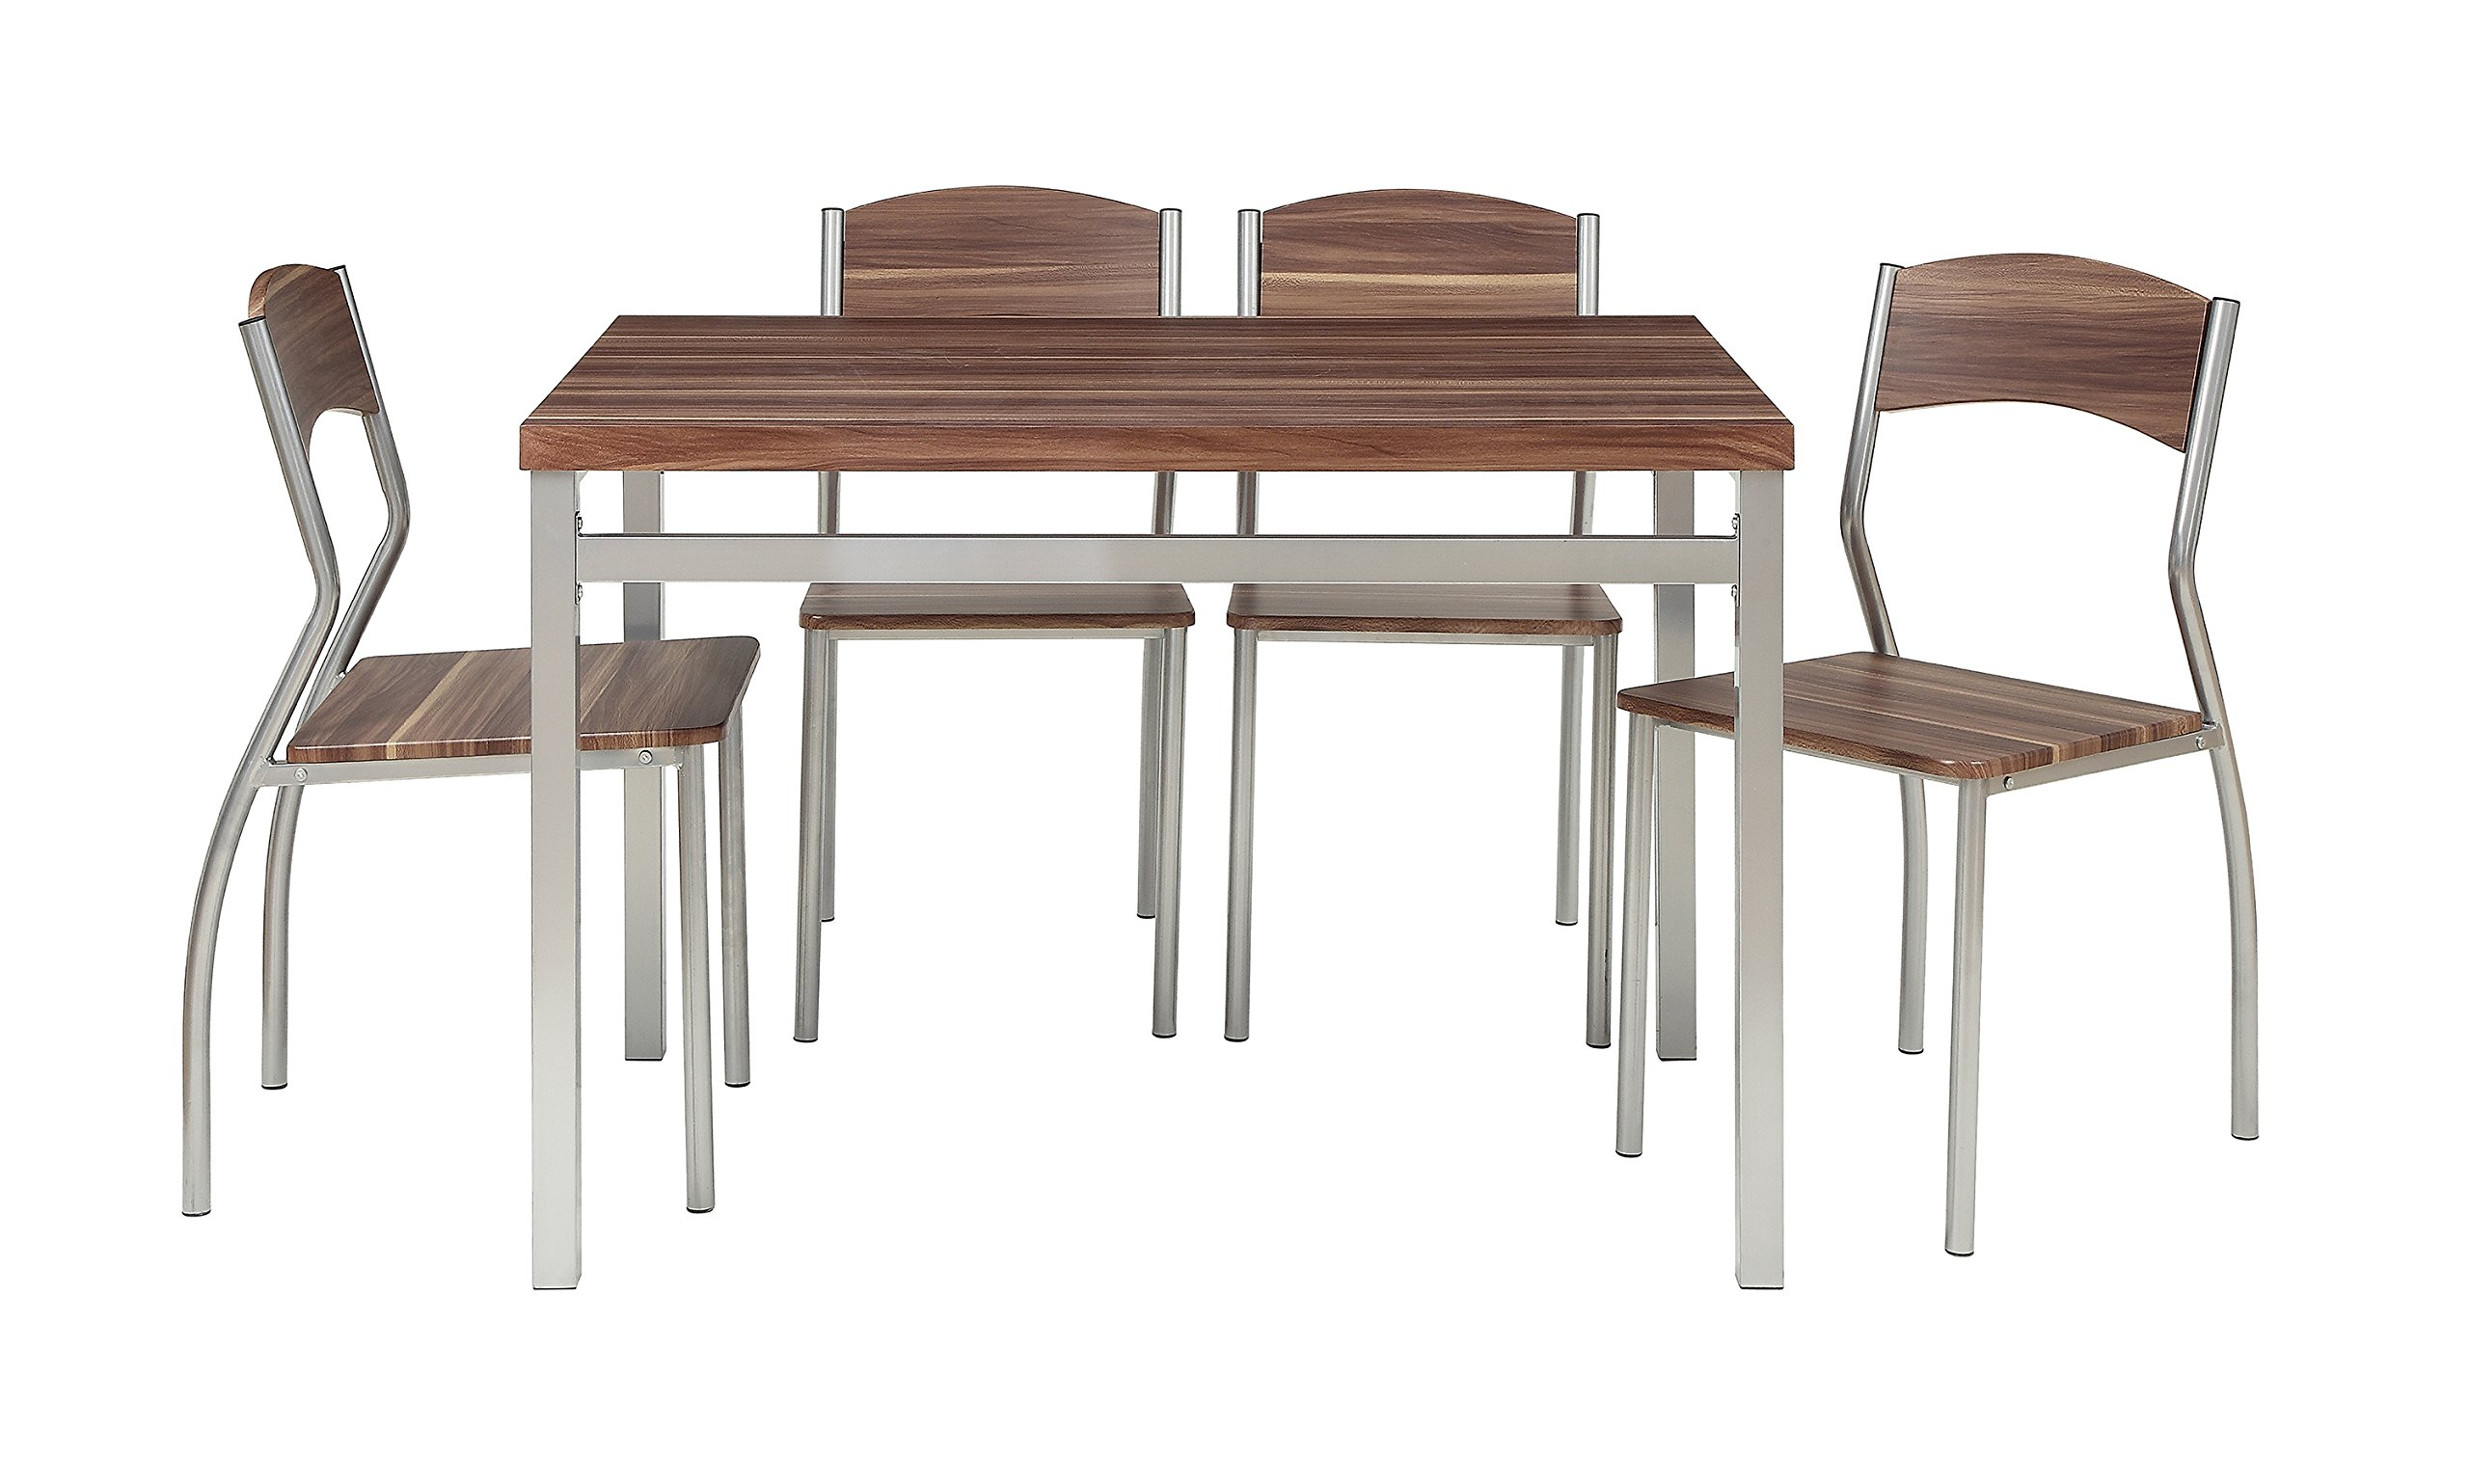 Abington Lane 5-Piece Dining Table Set with 4 Chairs - Modern and Sleek Dinette (Cedarwood Finish) by Abington Lane (Image #2)